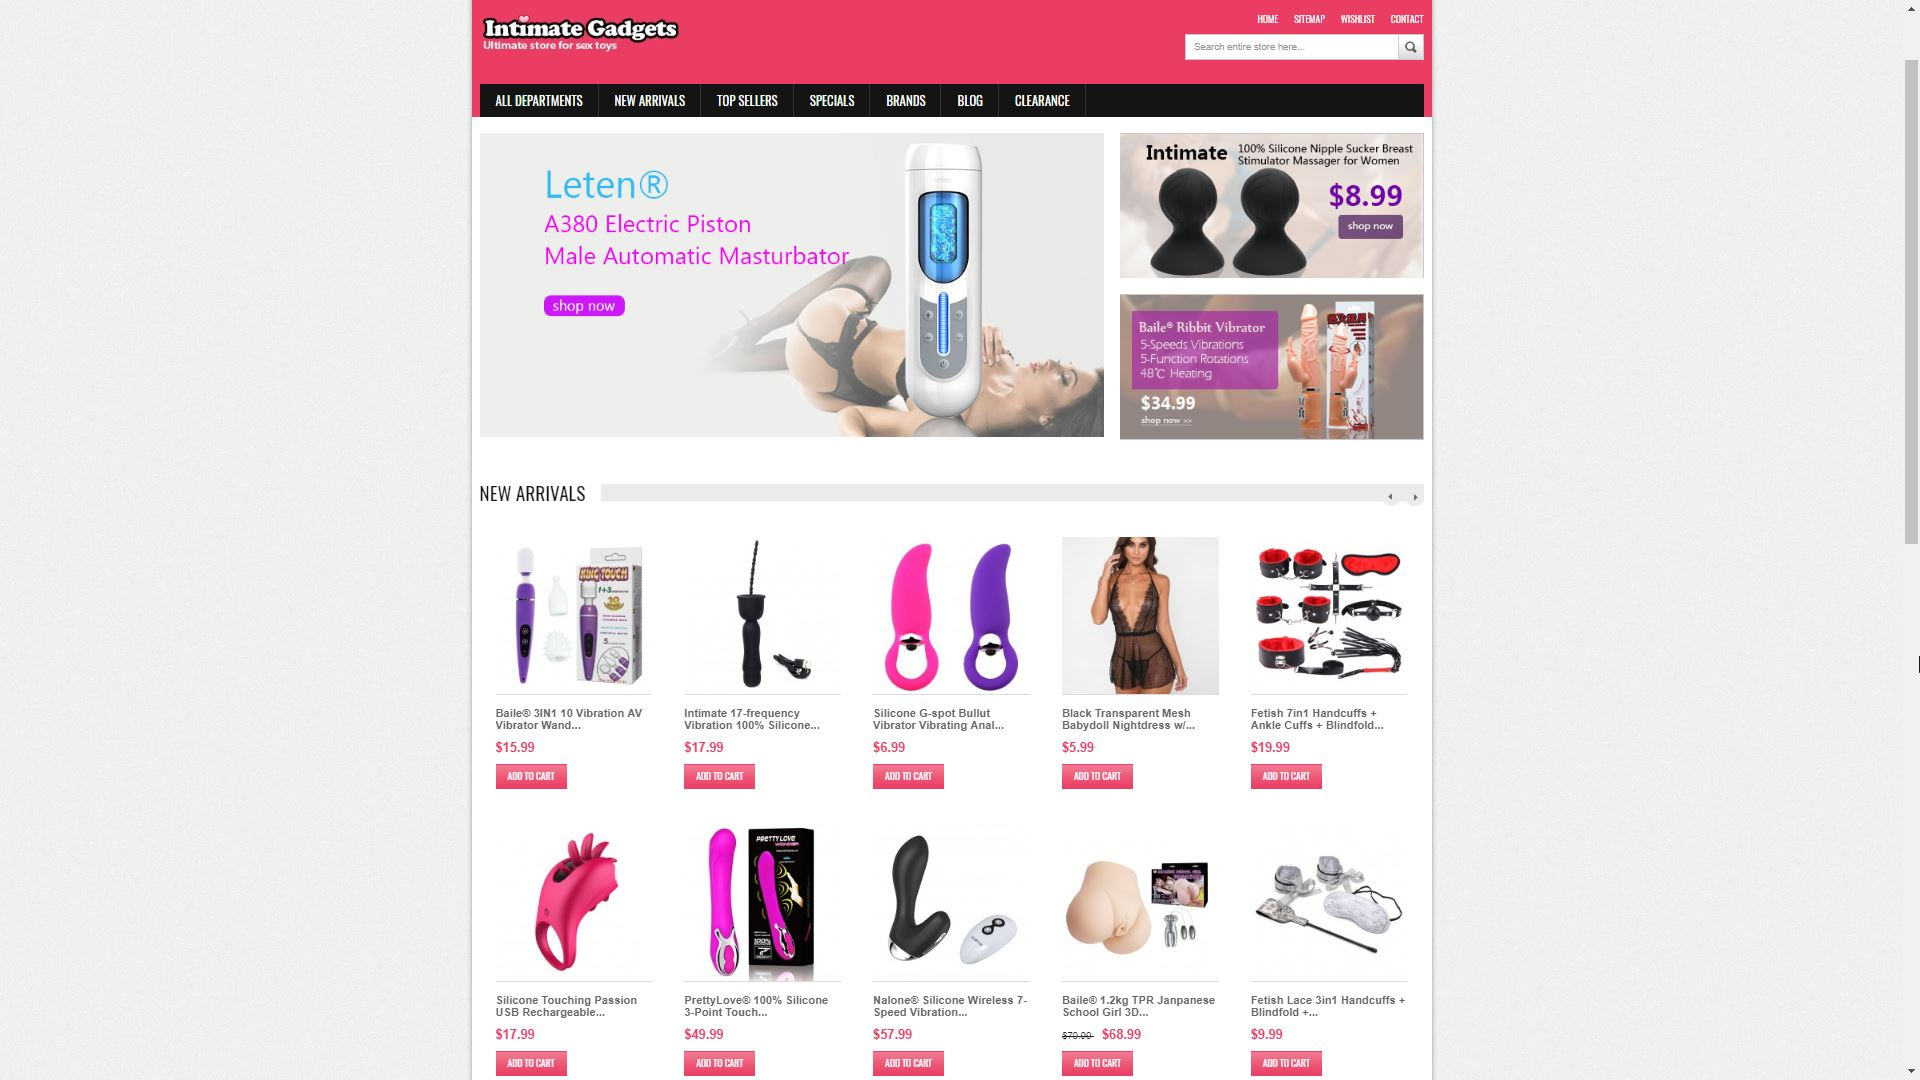 Intimate Gadgets New Arrivals